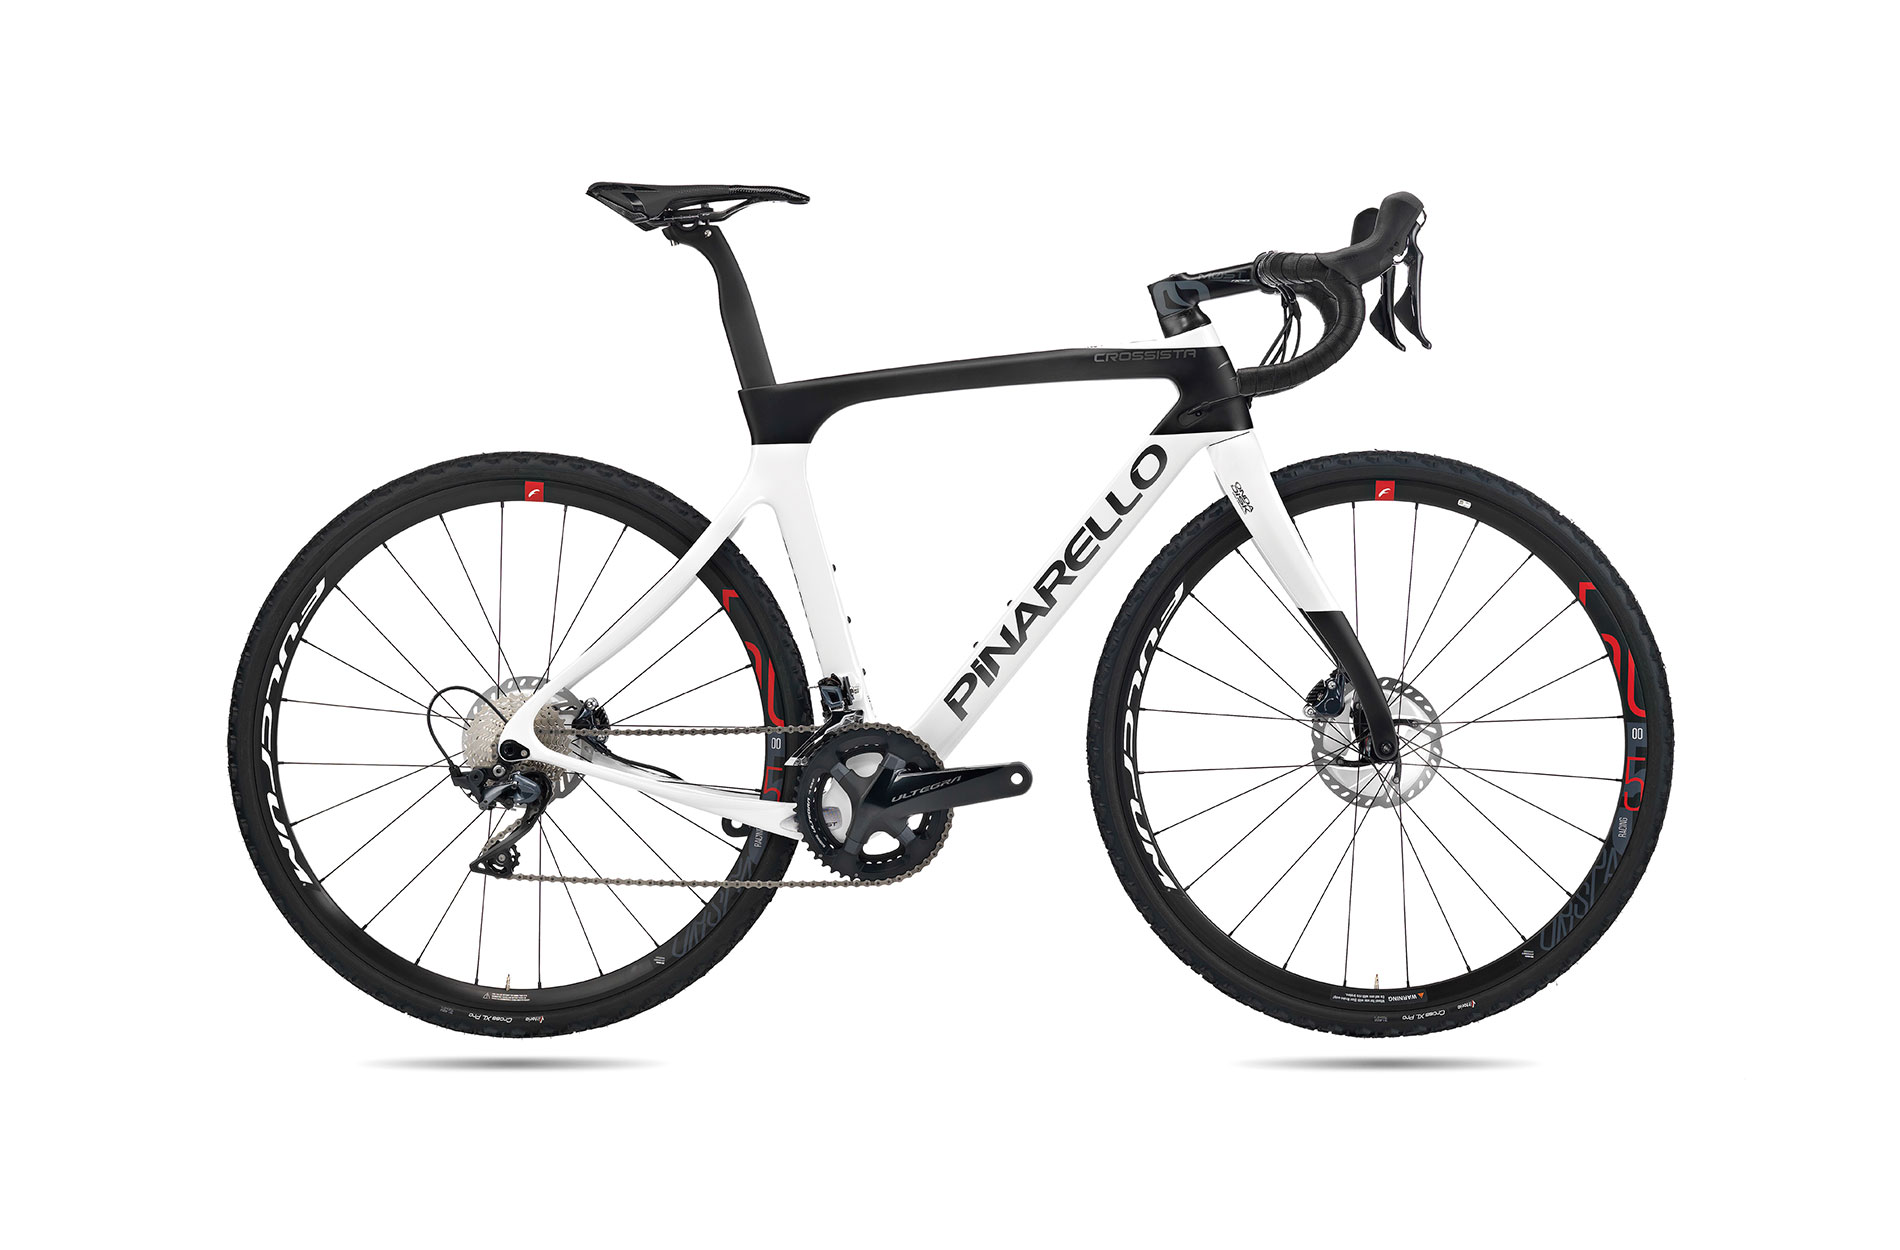 Pinarello-CROSSISTA-A449-FBl-20-21